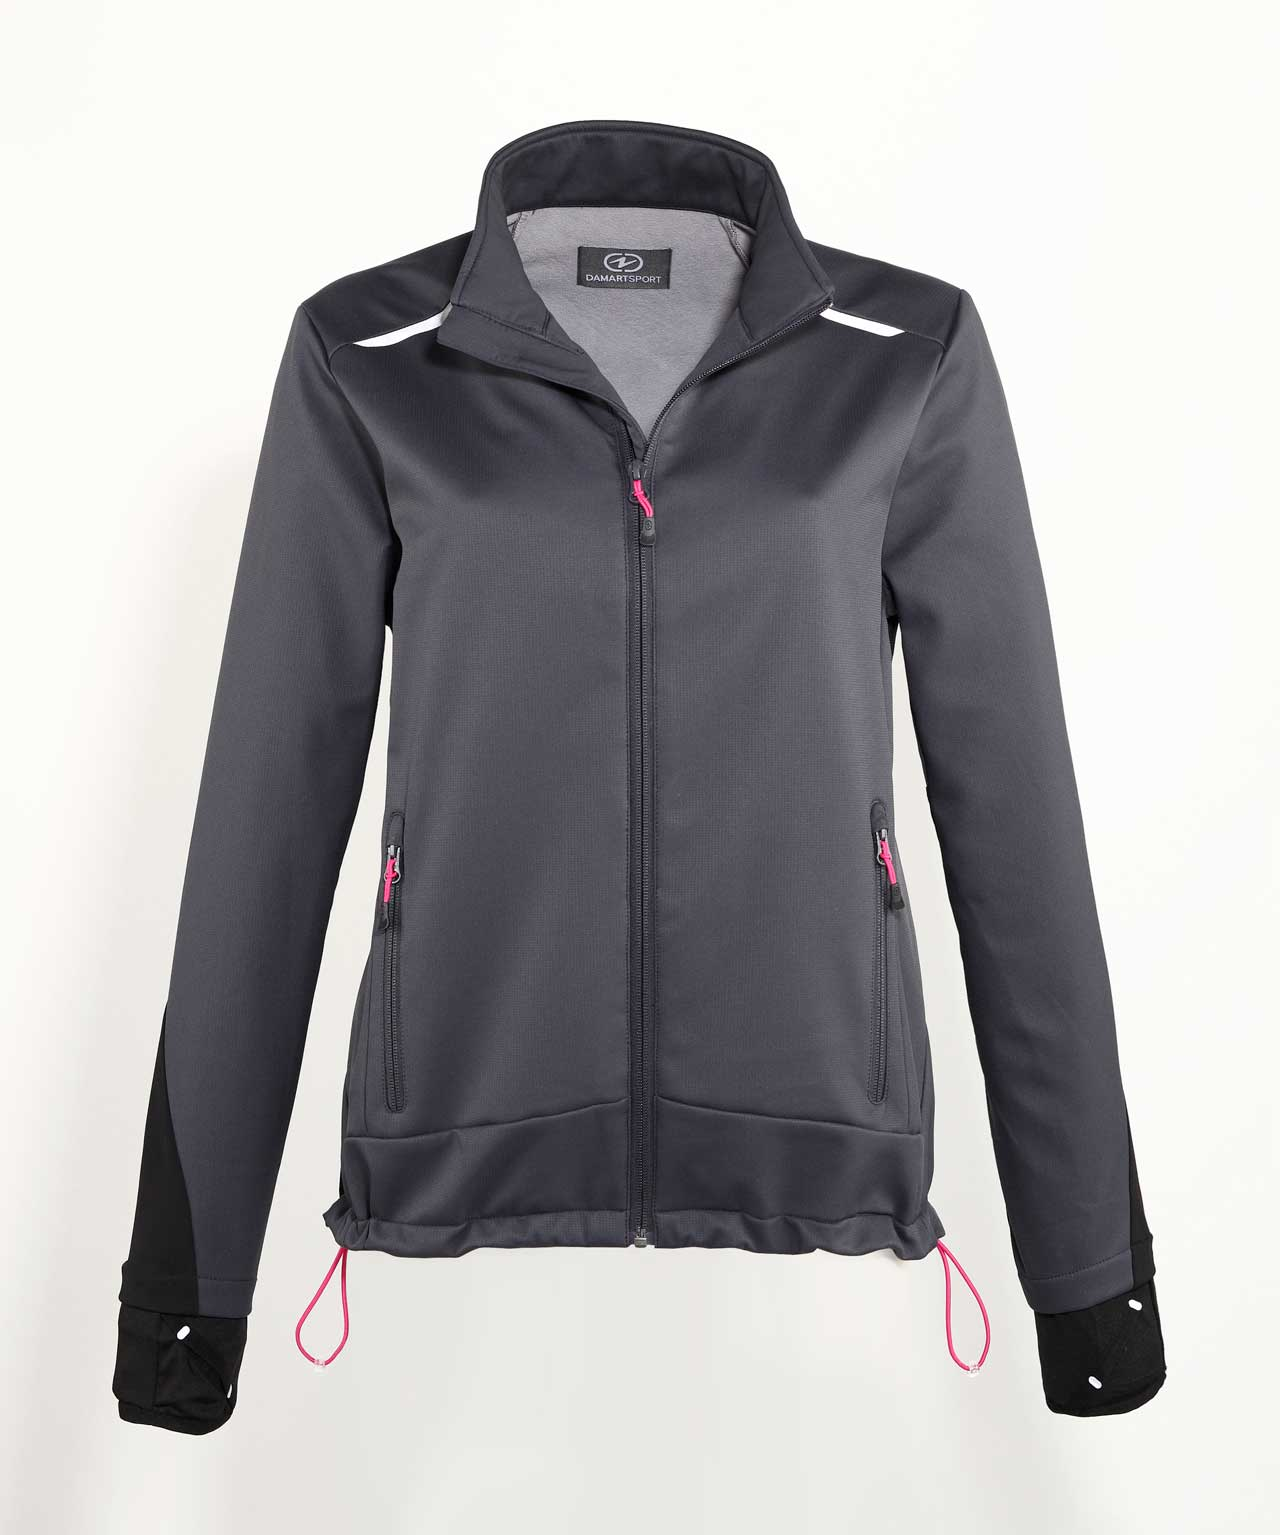 Chaqueta Soft Shell impermeable y transpirable esquí mujer - Antracita